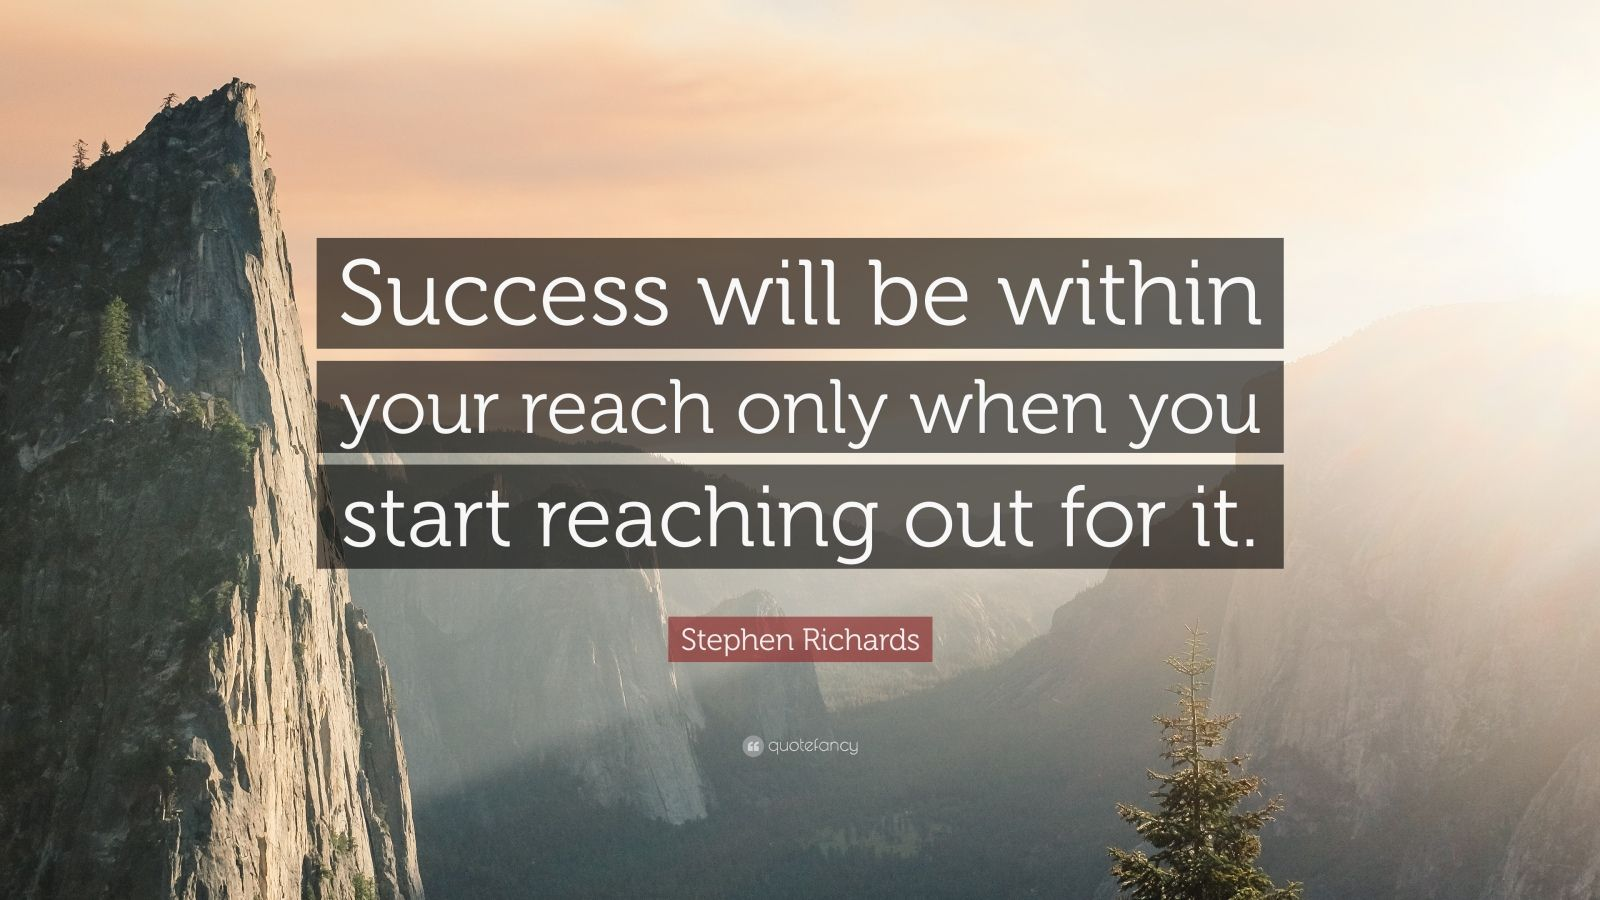 Persistence Quotes Wallpapers Stephen Richards Quote Success Will Be Within Your Reach